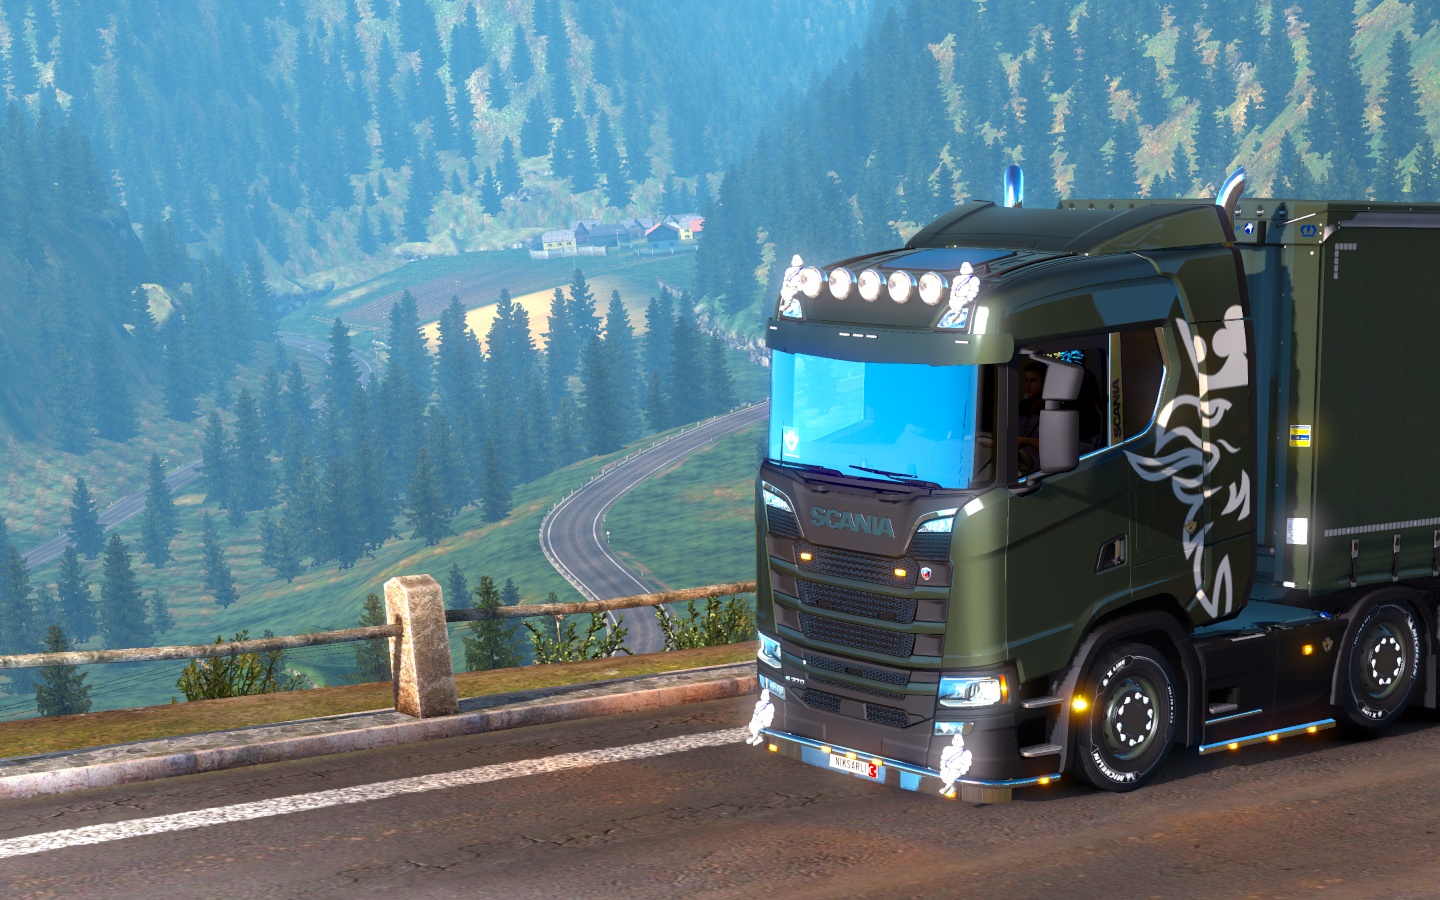 ets2_20190517_141804_00.png